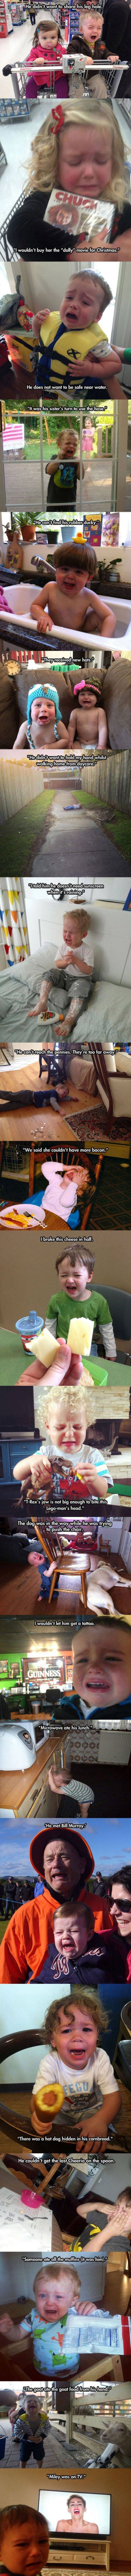 why kids cry funny picture